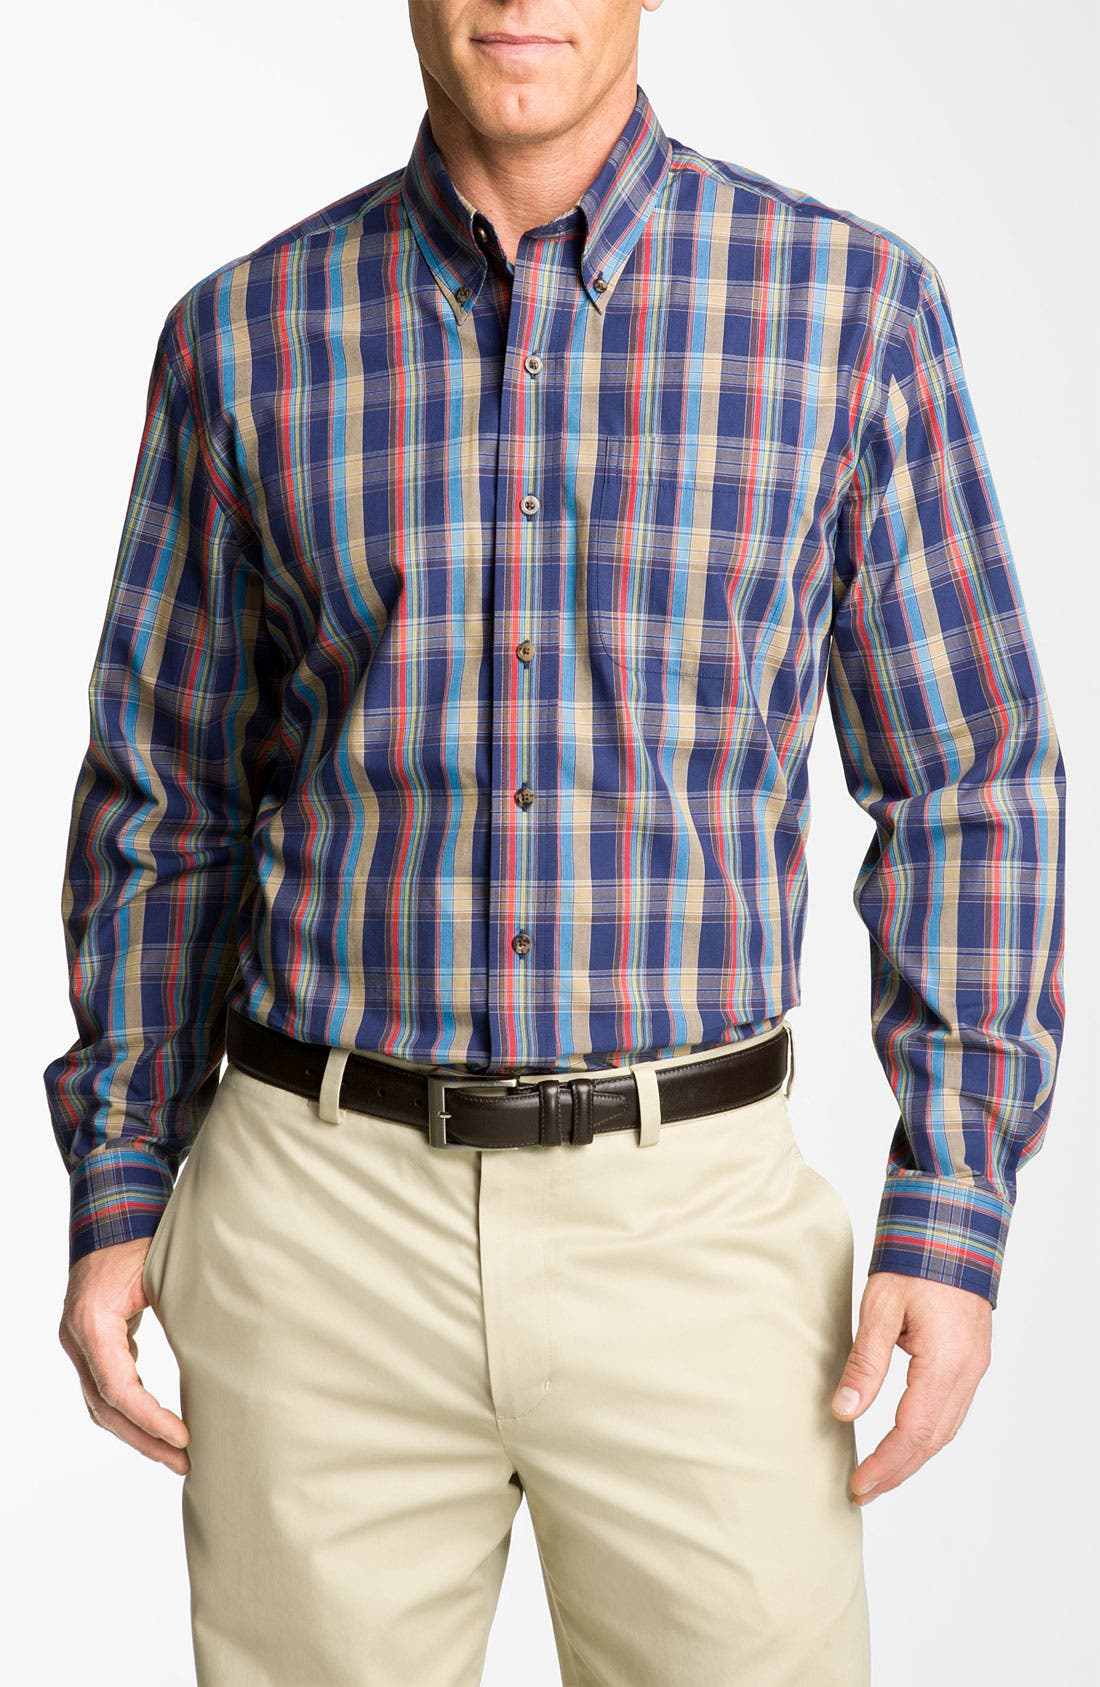 Main Image - Cutter & Buck 'Palouse' Plaid Sport Shirt (Big & Tall)